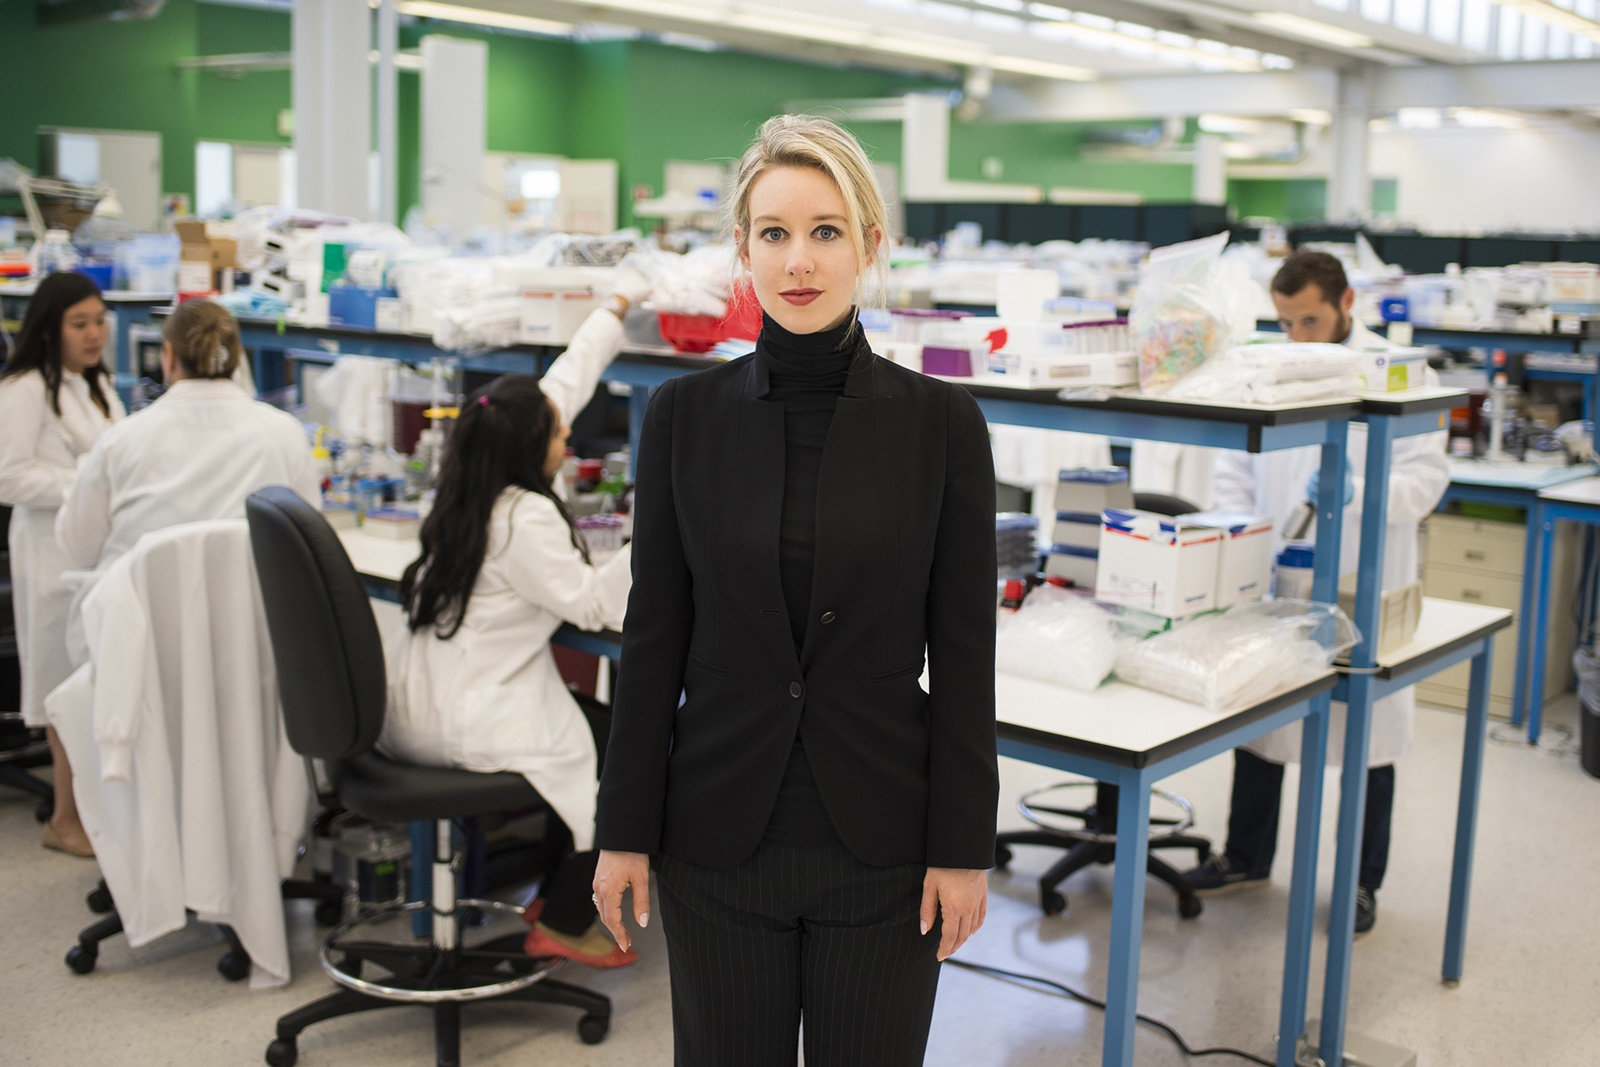 HBO documentary on Theranos' rise and fall premieres March 18th | DeviceDaily.com